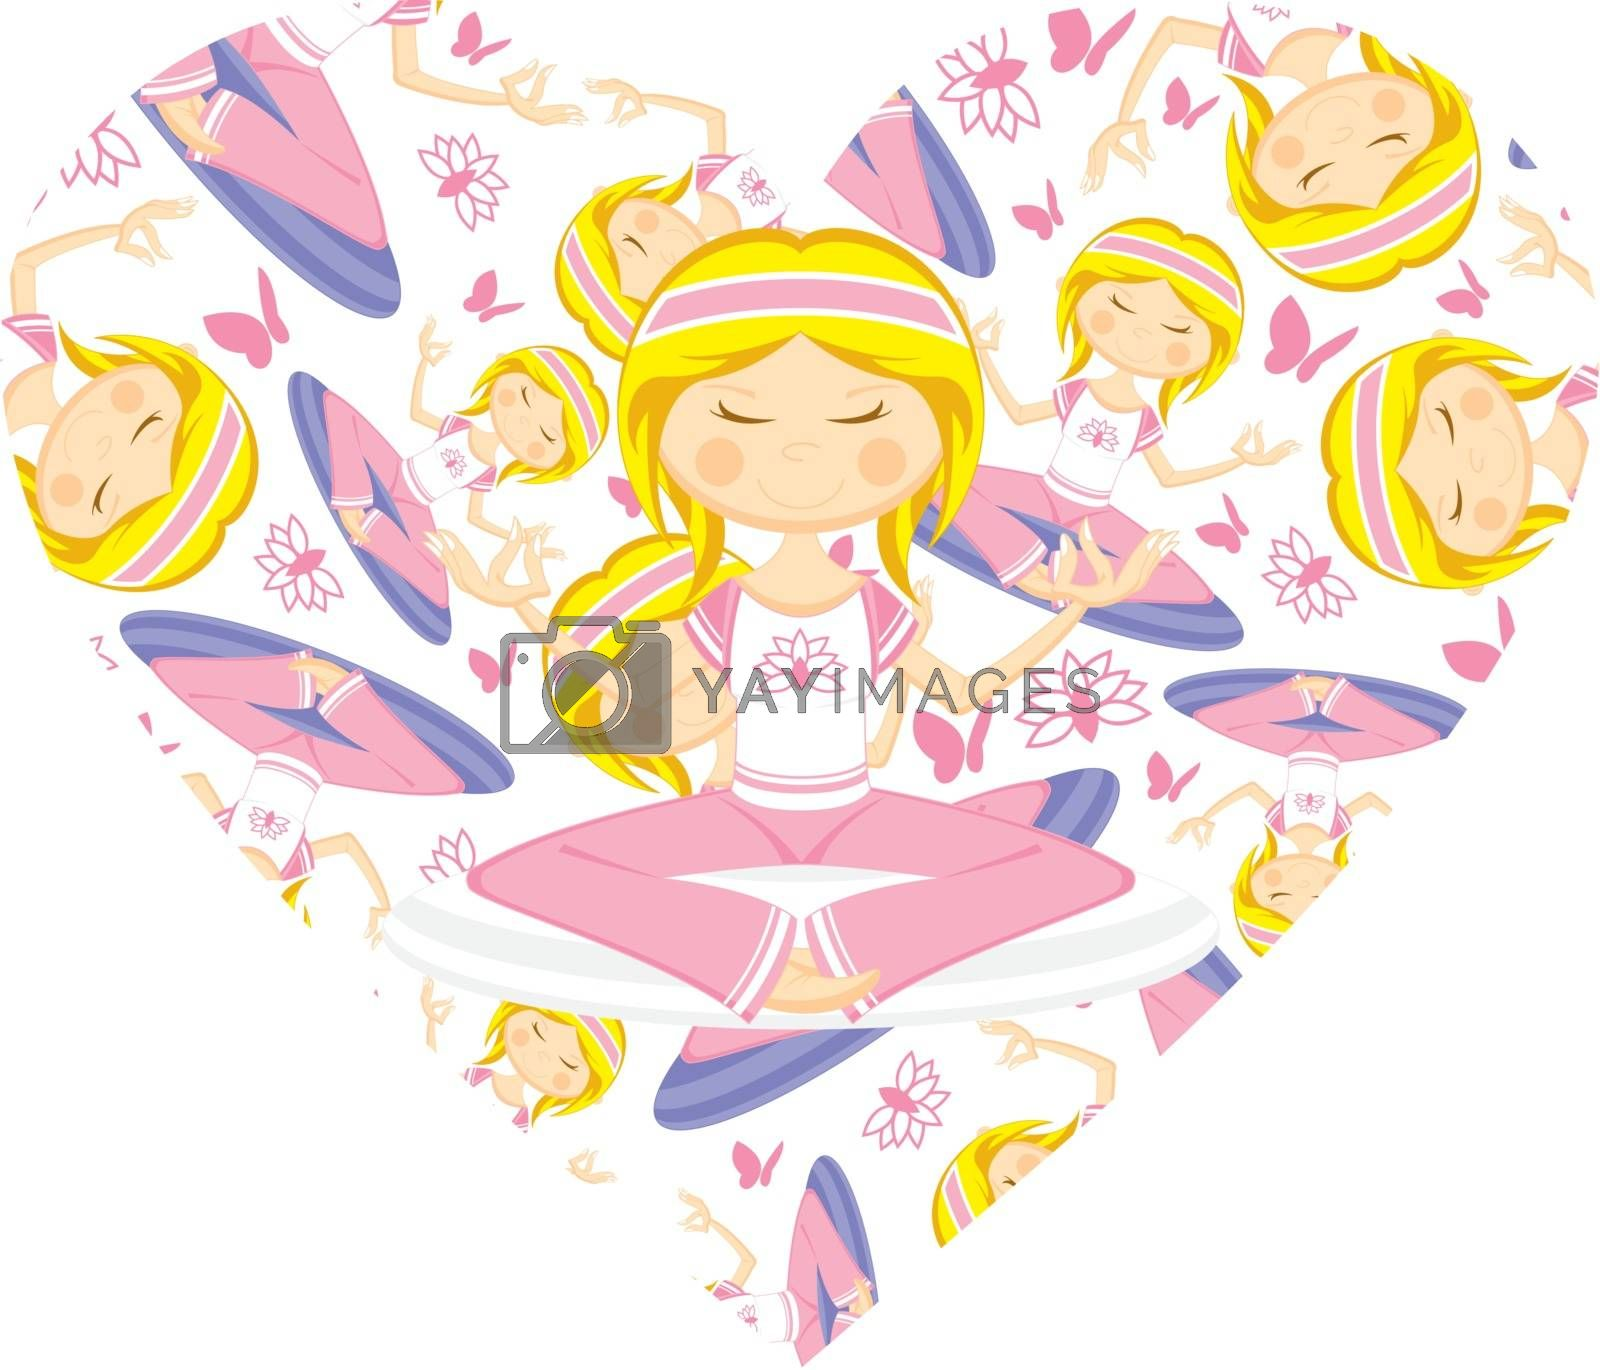 Heart Yoga Girl Pattern by markmurphycreative